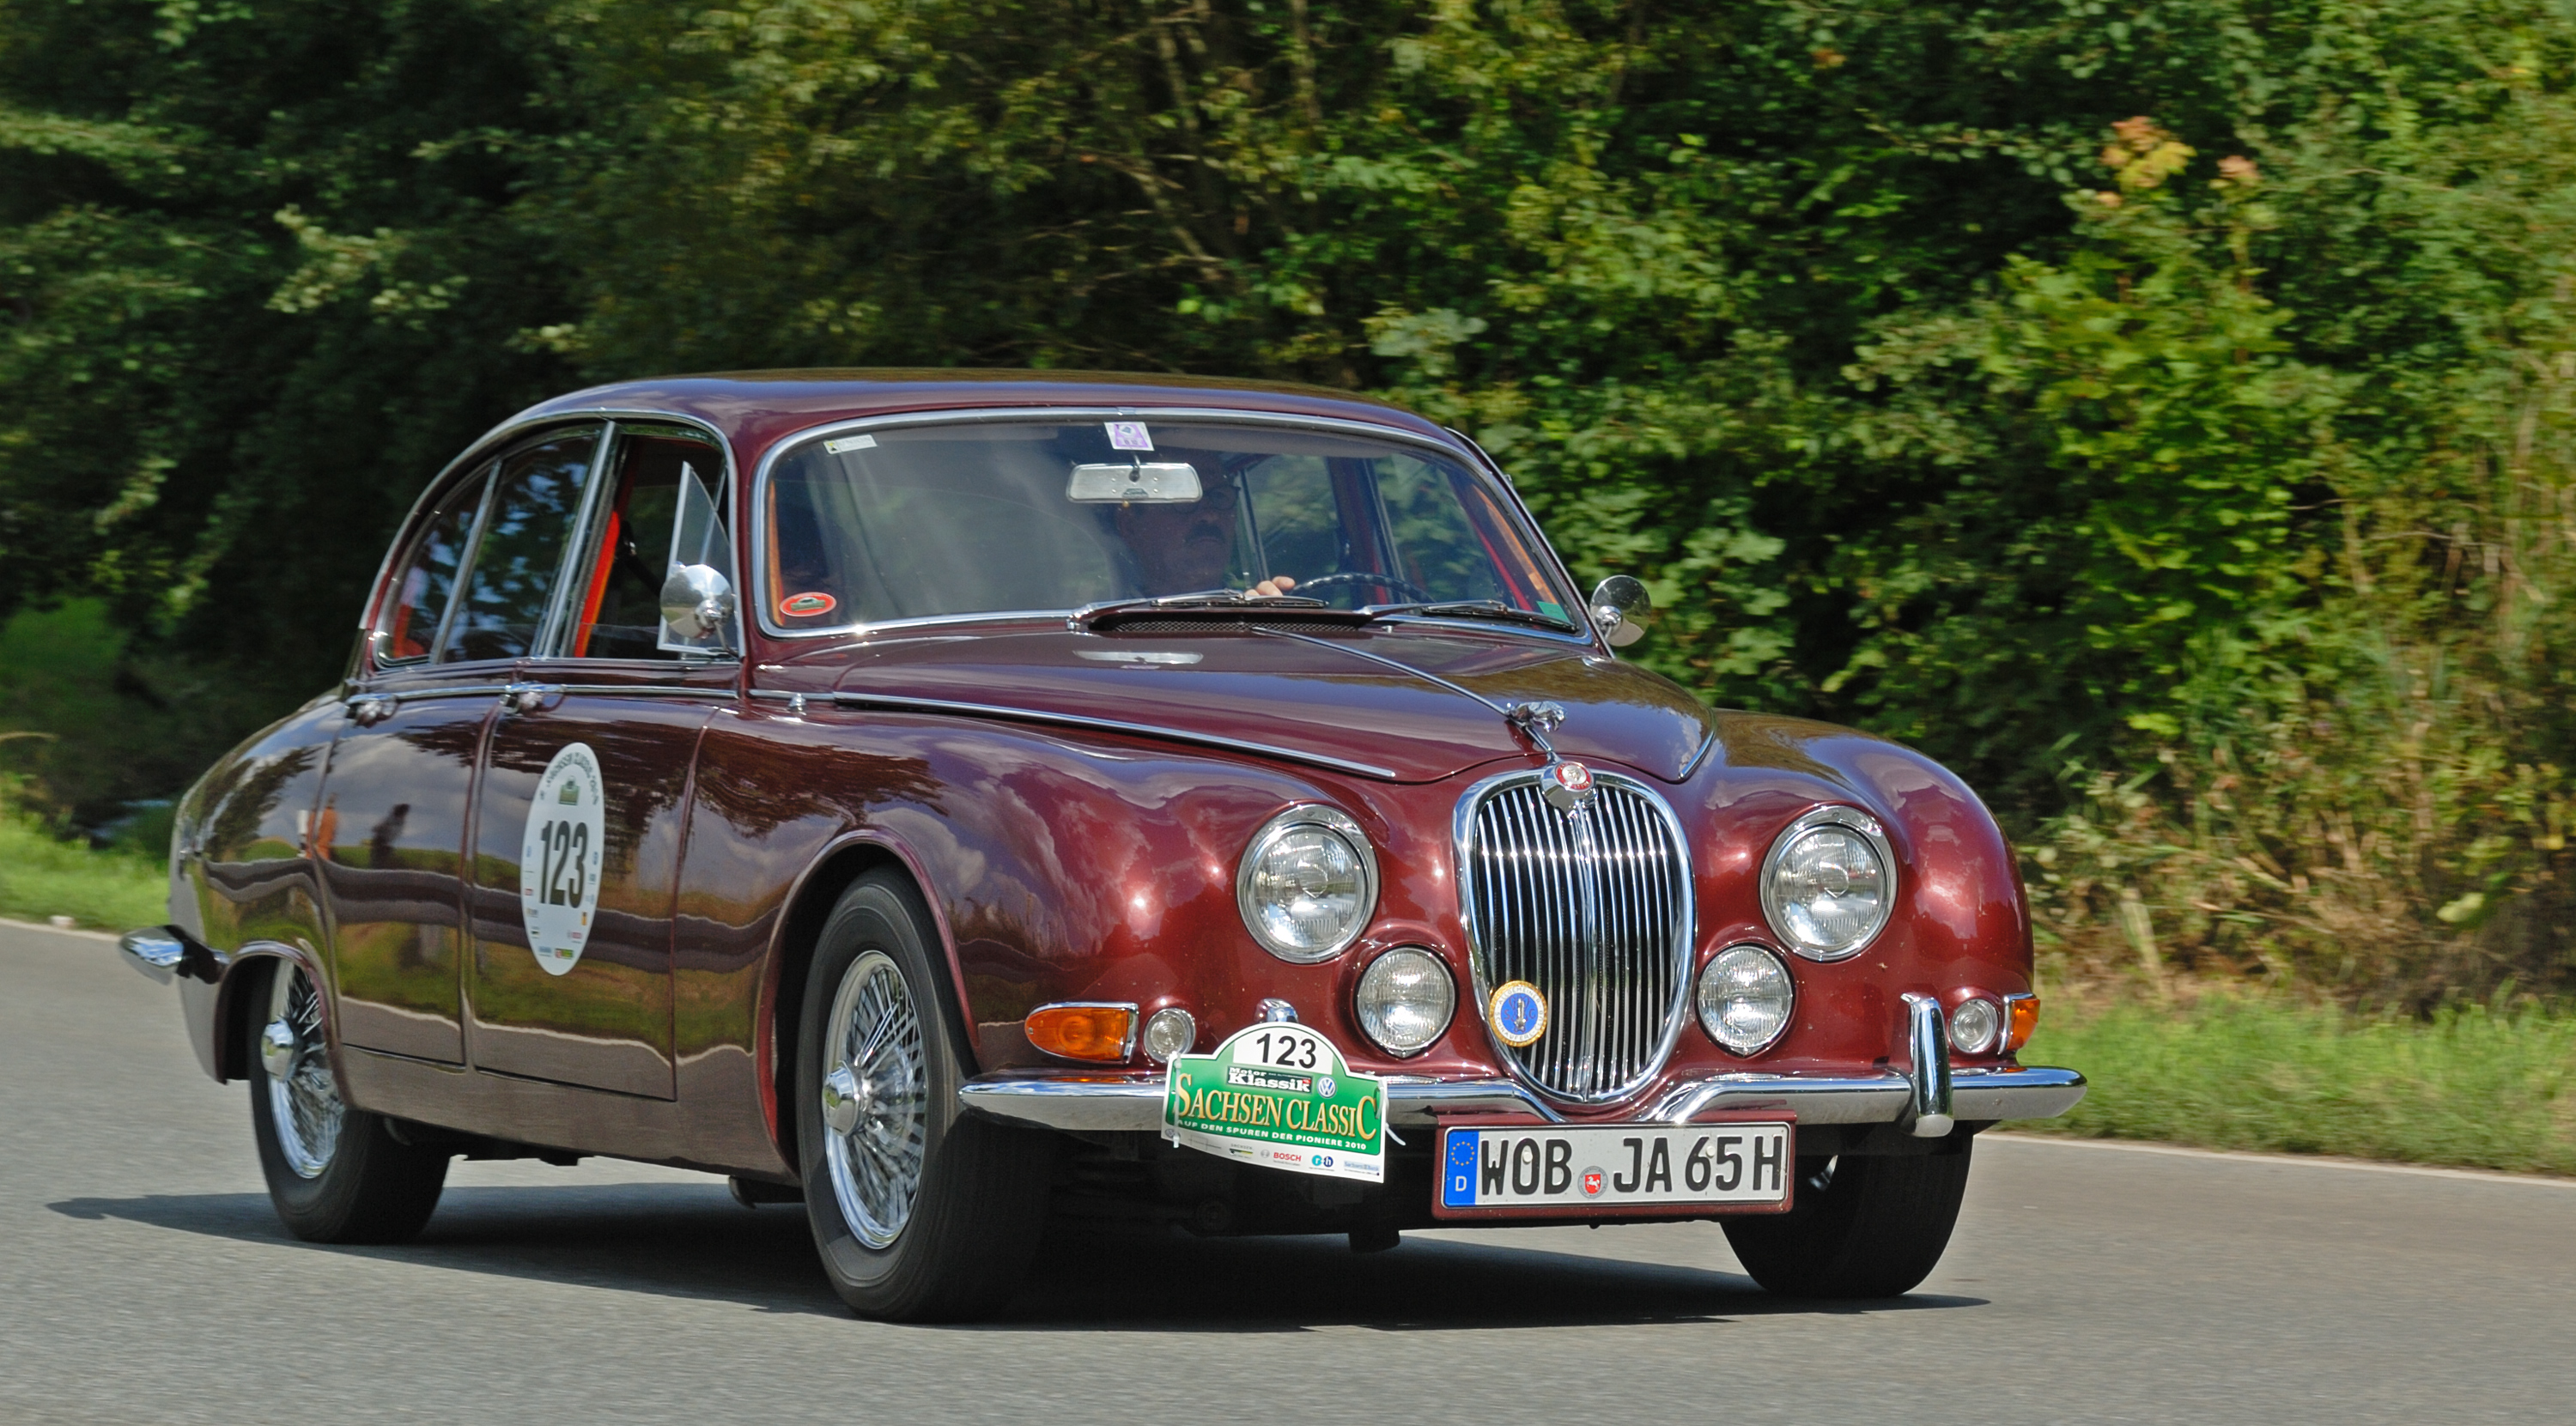 file saxony classic rallye 2010 jaguar 3 8 s type 1965 aka jpg wikimedia commons. Black Bedroom Furniture Sets. Home Design Ideas